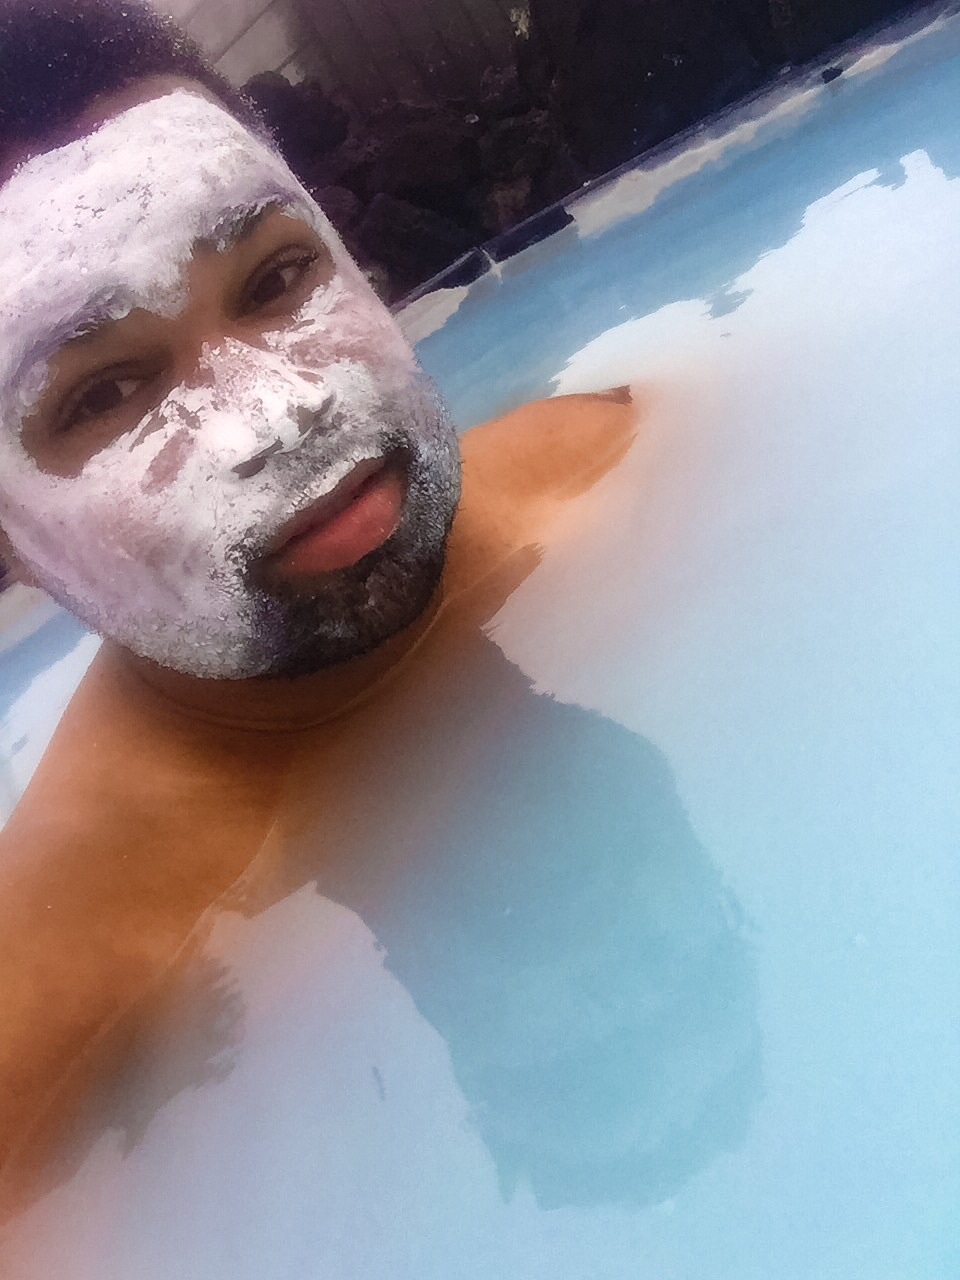 Chilling with the silica mud mask on. This was followed by the algae mask.